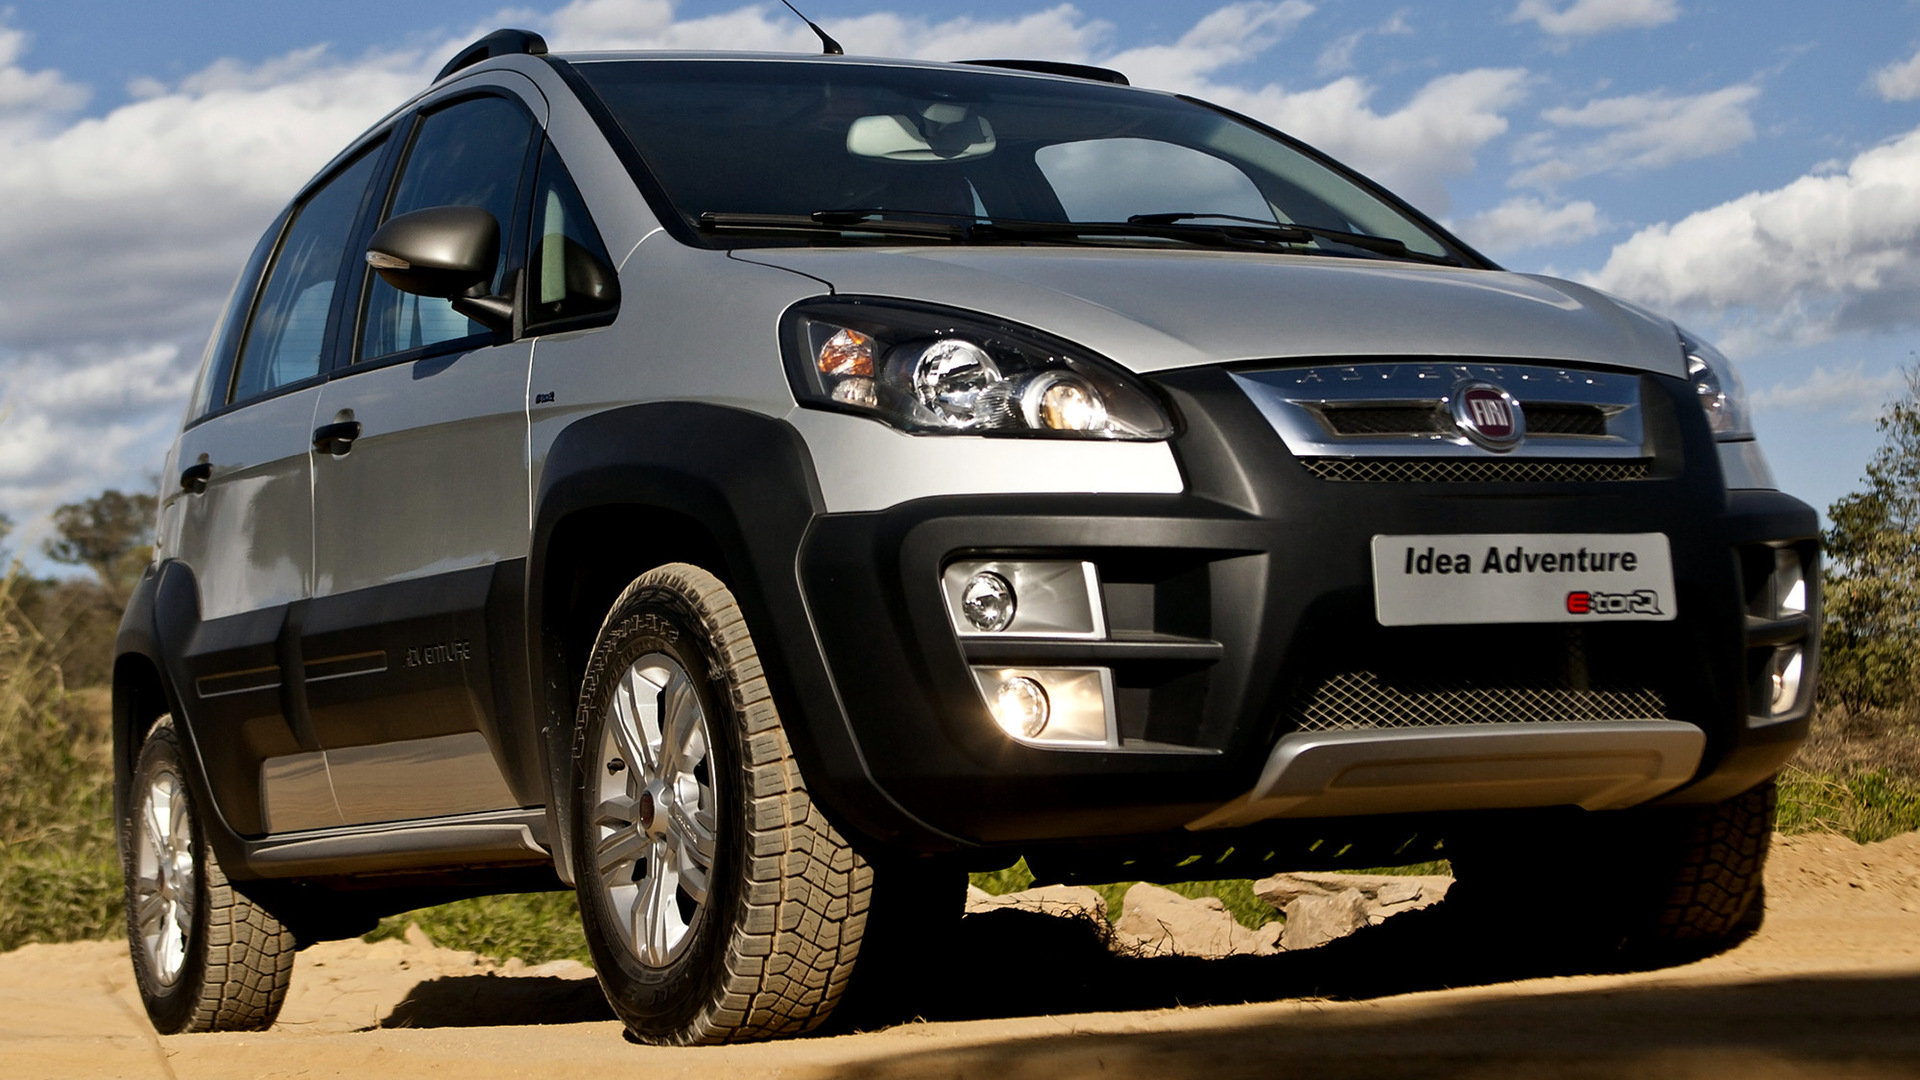 2010 Fiat Idea Adventure Wallpapers And Hd Images Car